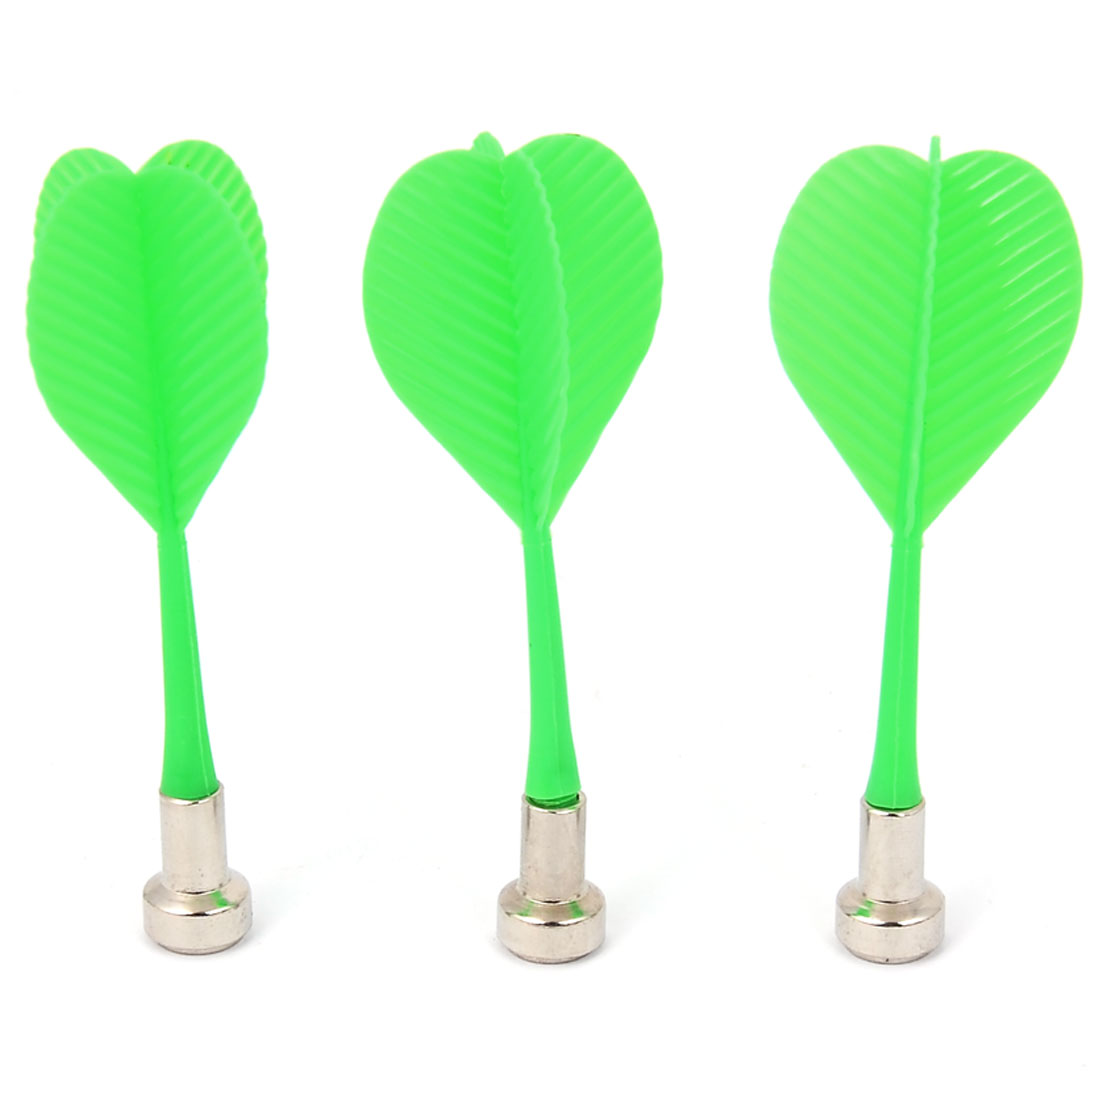 Dartboard Game Plastic Handle Magnetic Flat Tip Safety Dart 3 Pcs Green